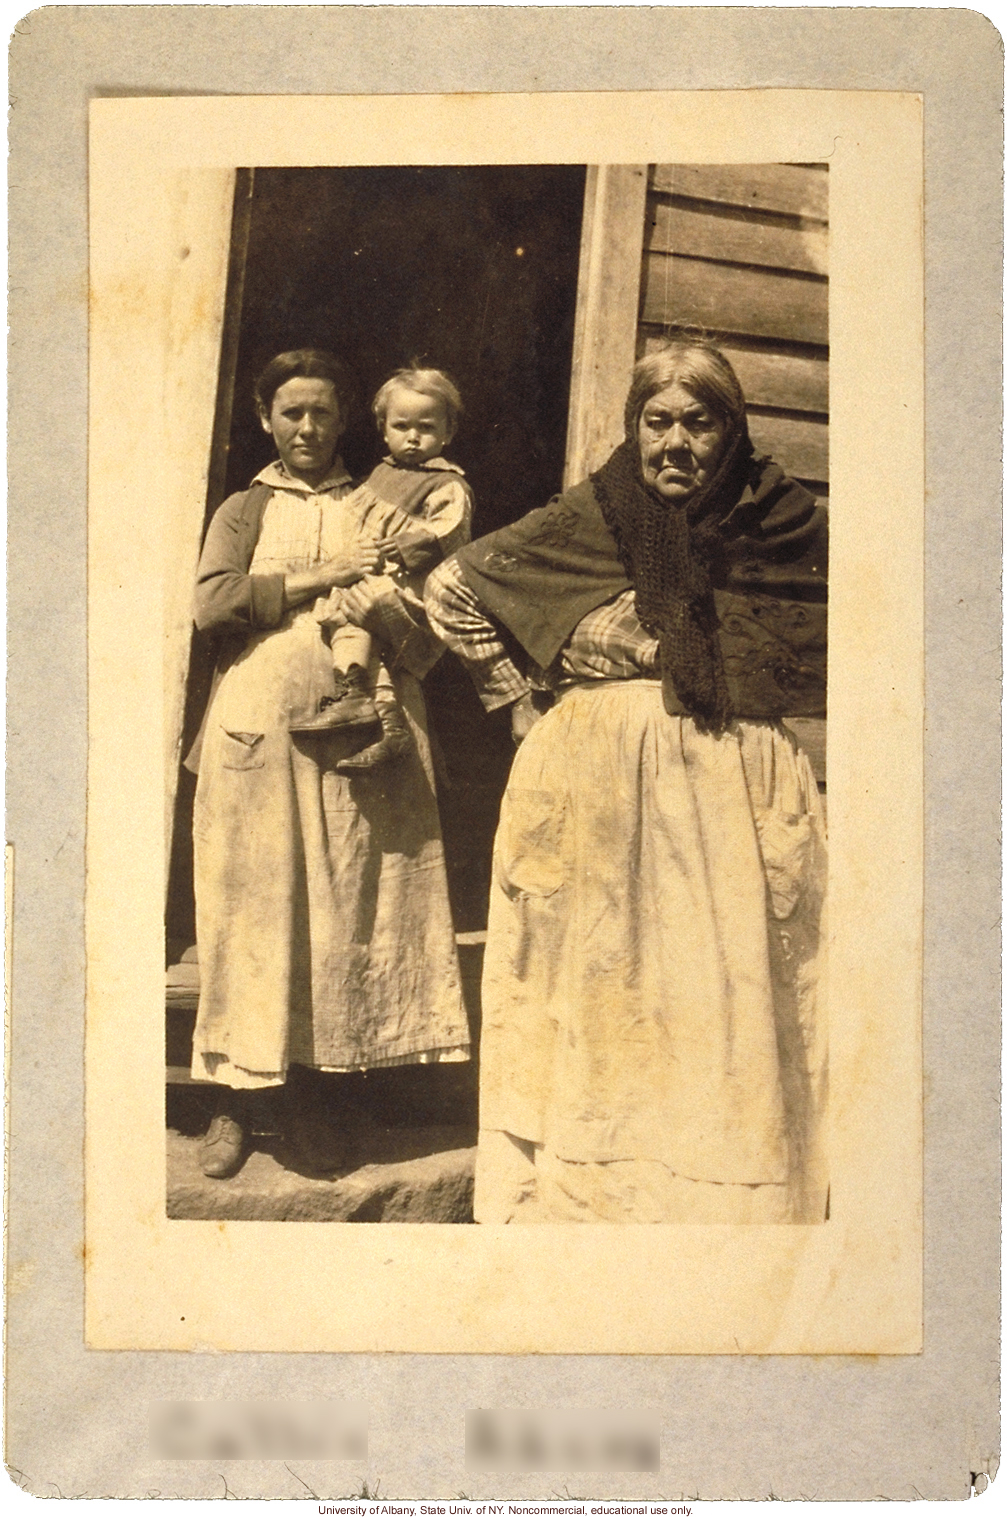 Callie Black (pseudonym) of the Win Tribe, from Arthur Estabrook's scrapbook of field photographs from Amherst County, Virginia